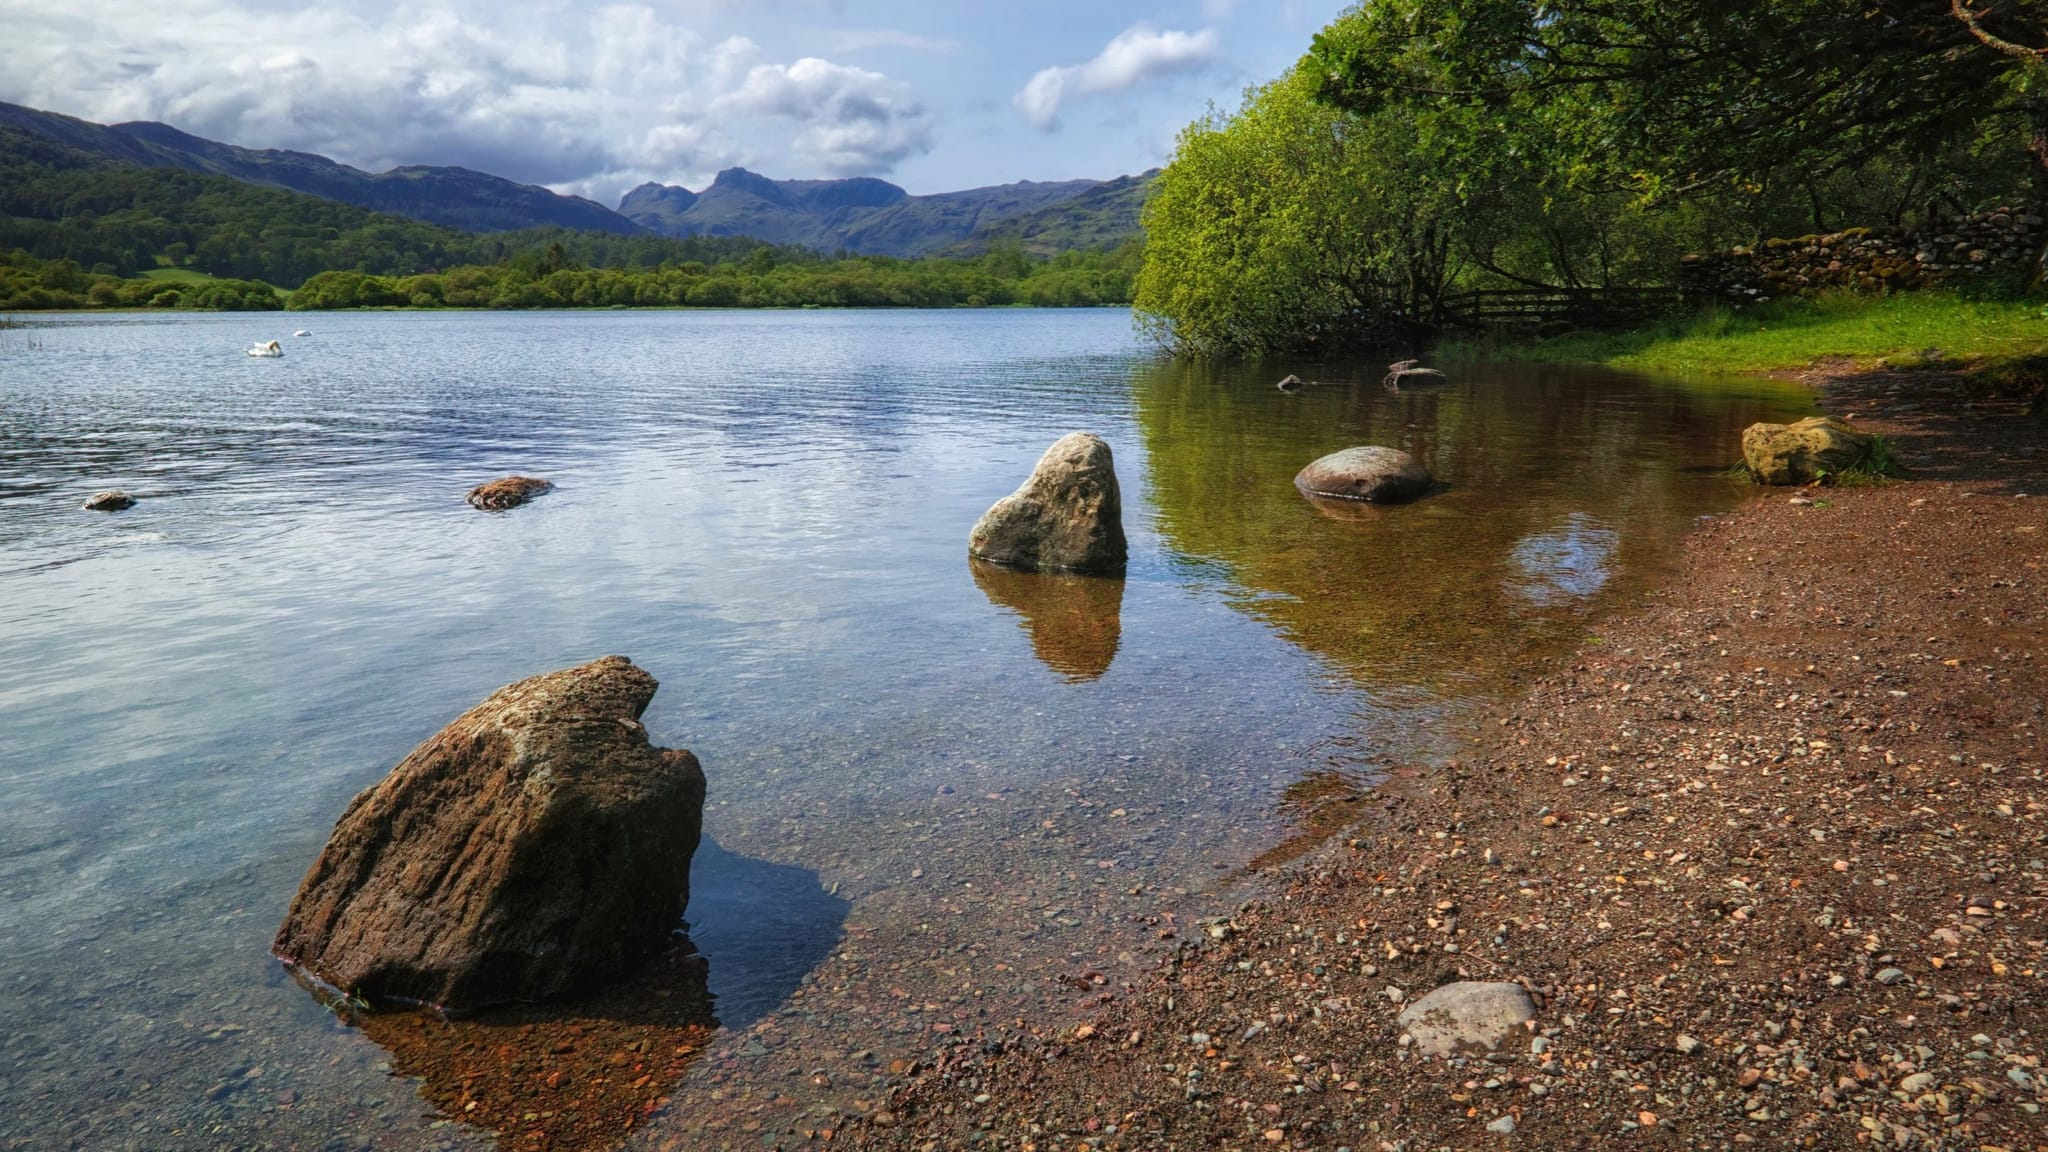 A photograph from the eastern shore of Elter Water looking towards the Langdale Pikes and the surrounding fells. Two nearby rocks poke out of the lake. Shot in the summer.